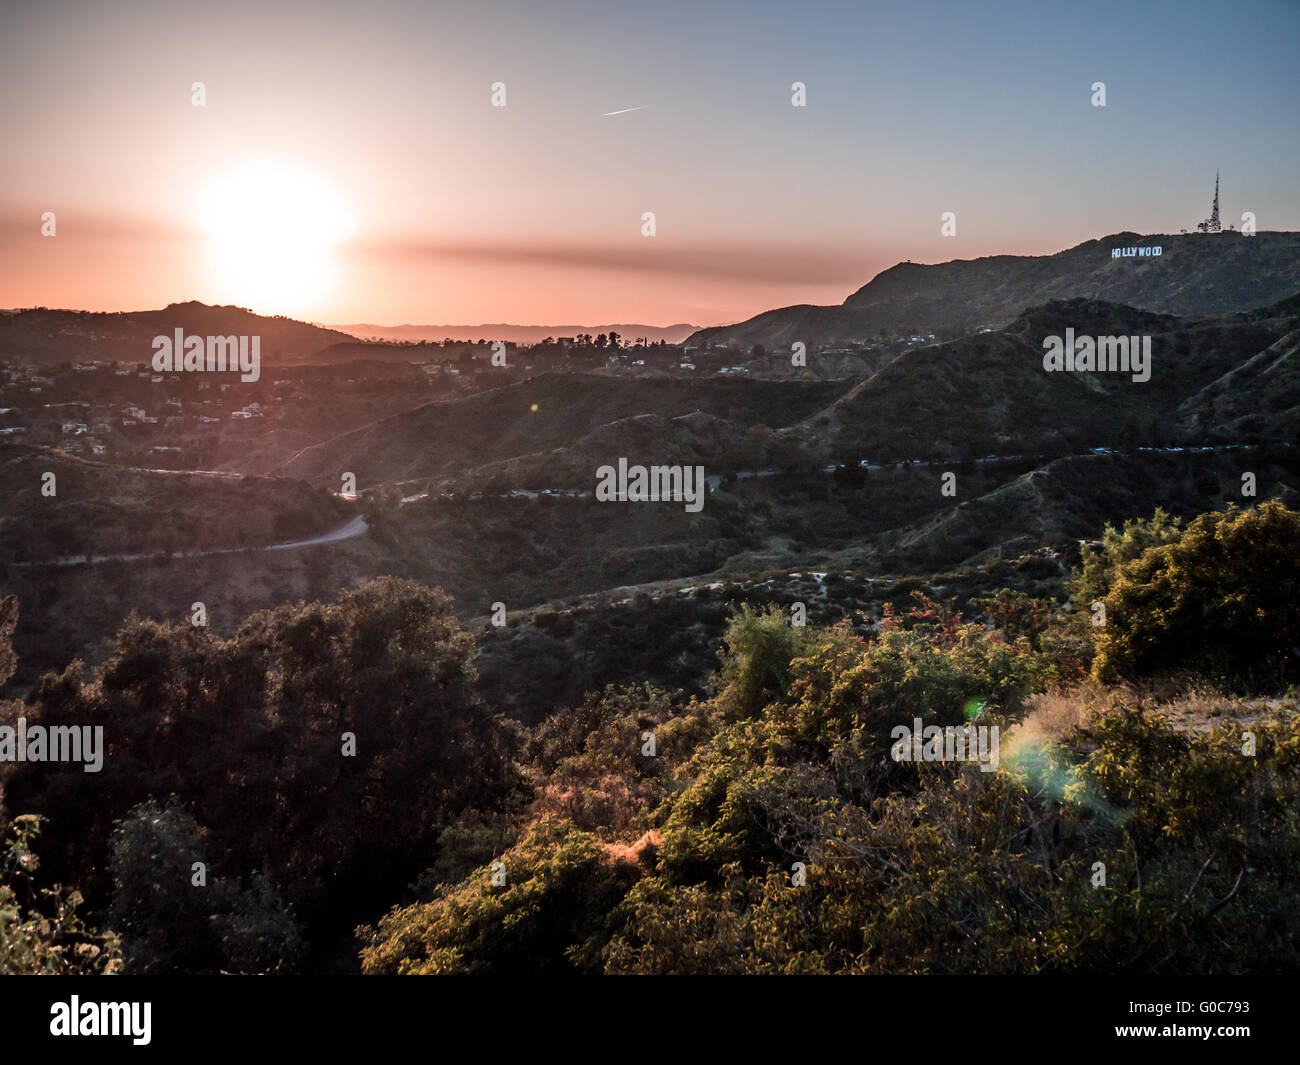 Sunset over Hollywood Hills - Stock Image